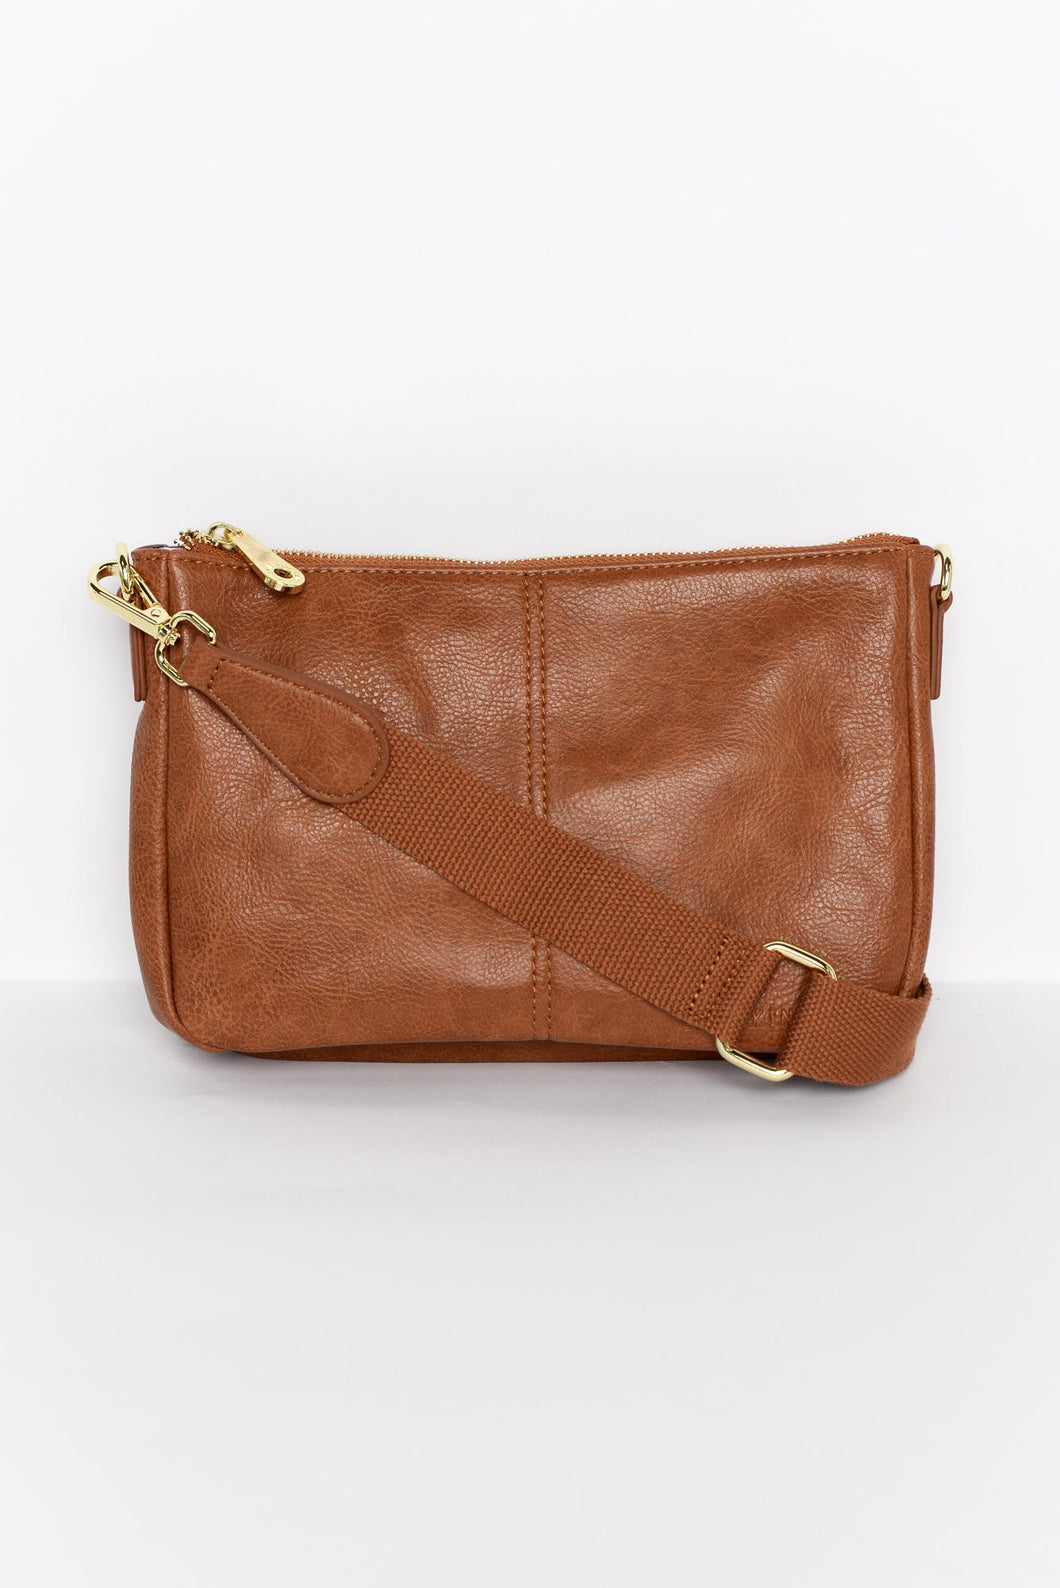 Bowe Tan Shoulder Bag